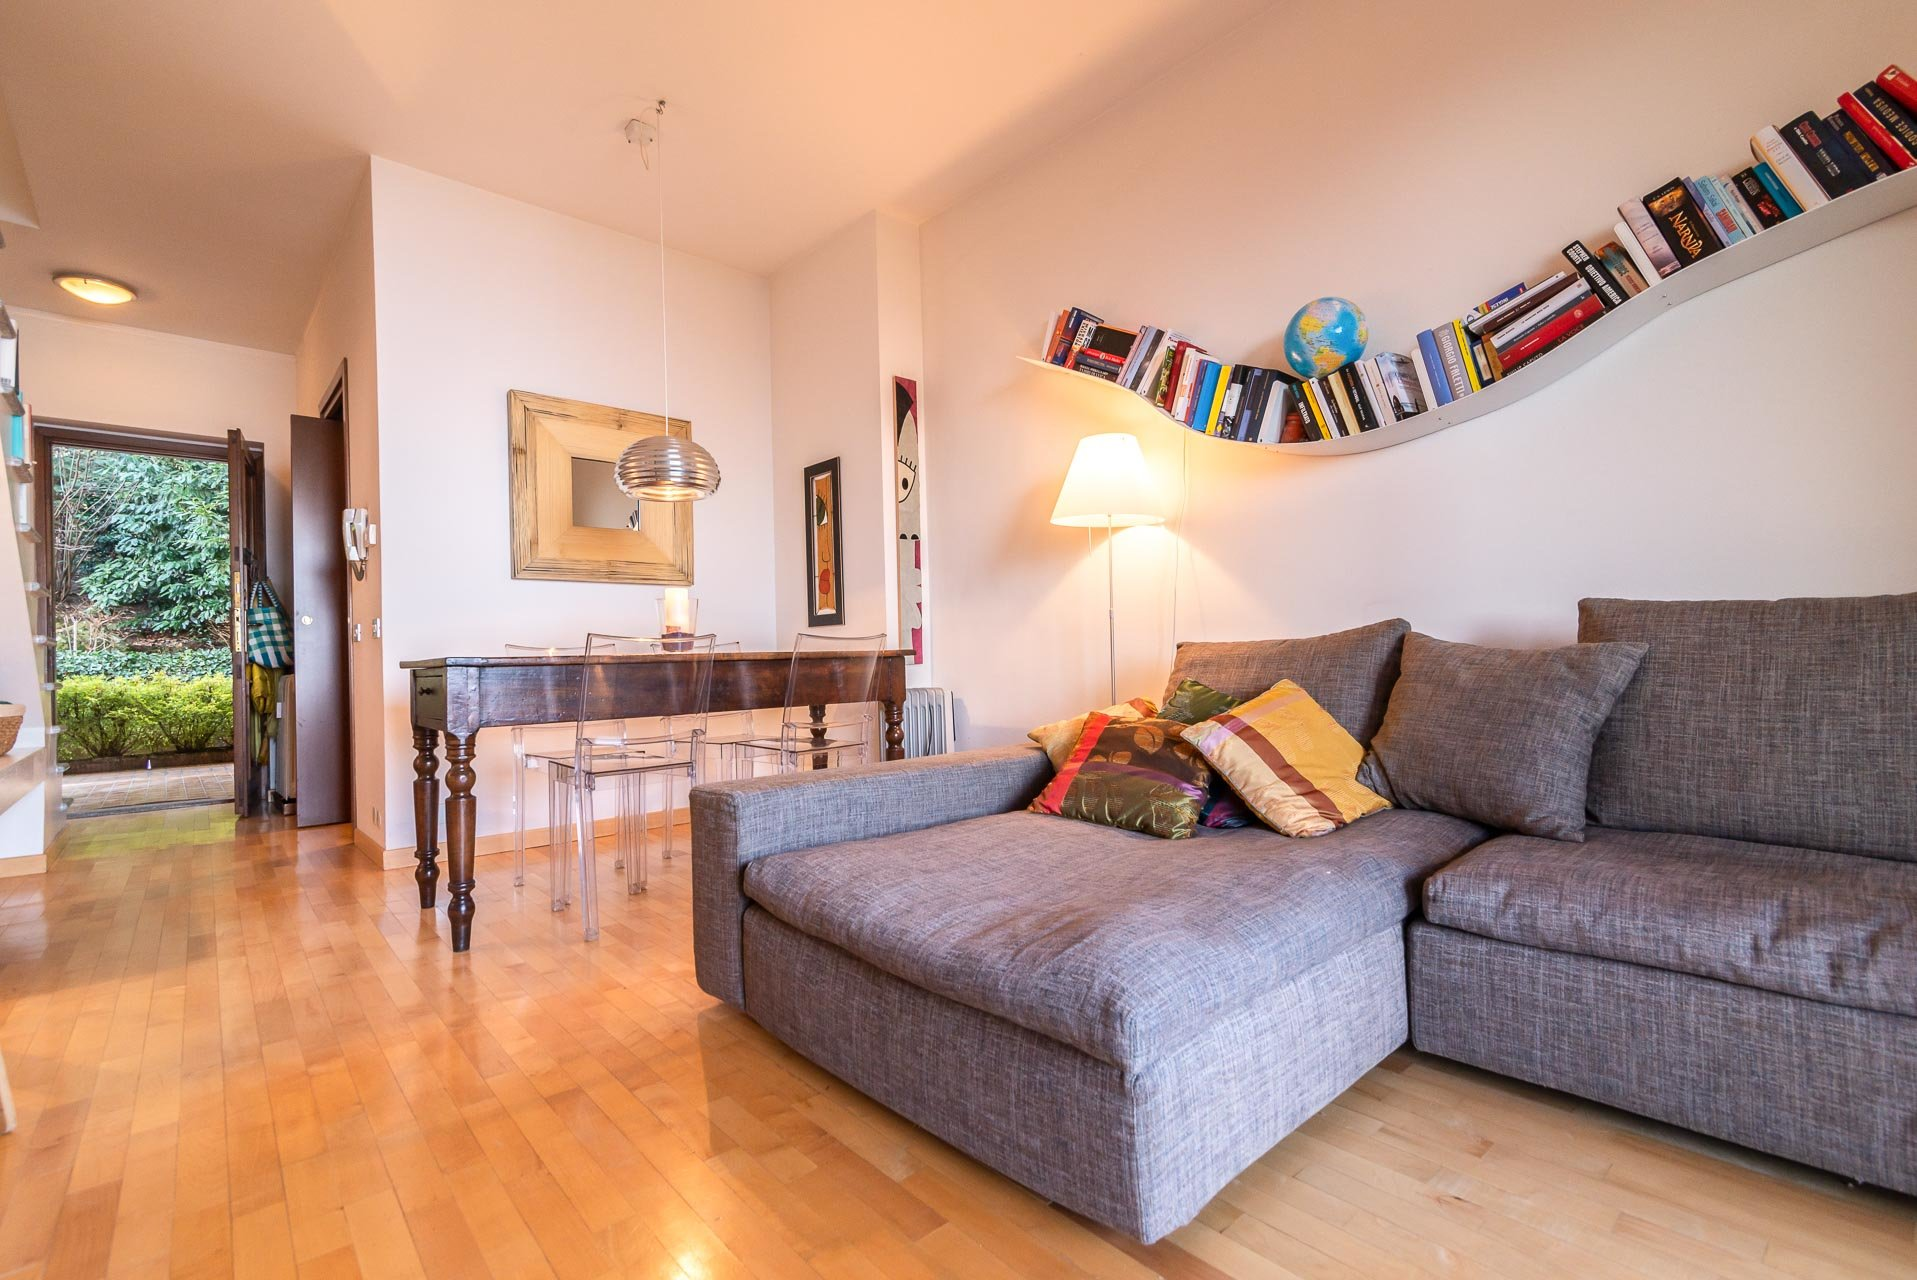 Apartment for sale in Stresa in a residence - sitting room